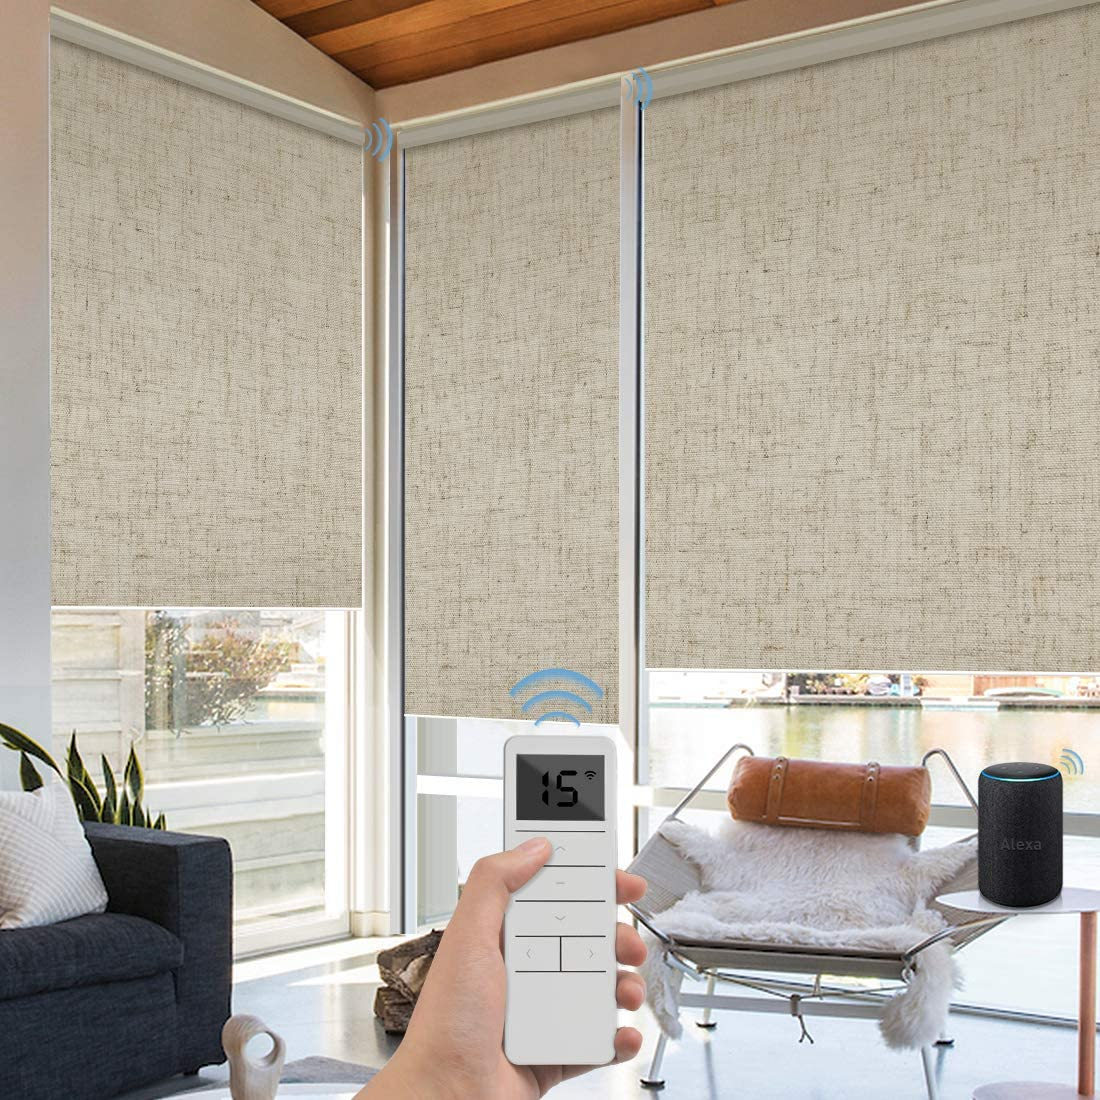 Graywind Motorized Roller Shades 100% Blackout Free Stop Window Shades Cordless Wireless Remote Control Window Roller Blinds with Valance for Smart Home and Office, Customized Size, Linen Beige